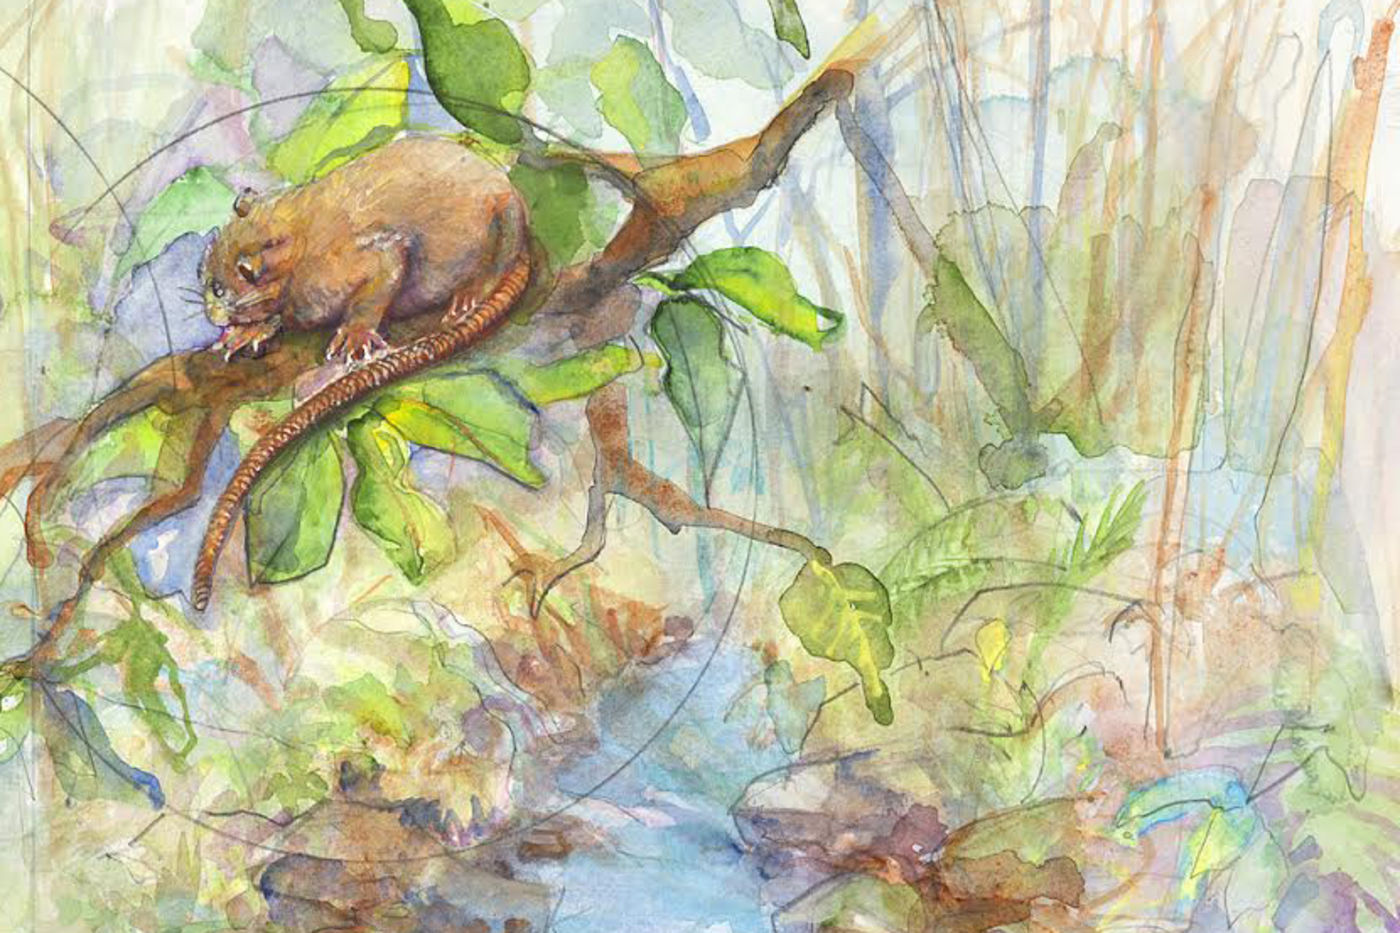 Watercolor painting of a brown rat in a tree, with a river in the background